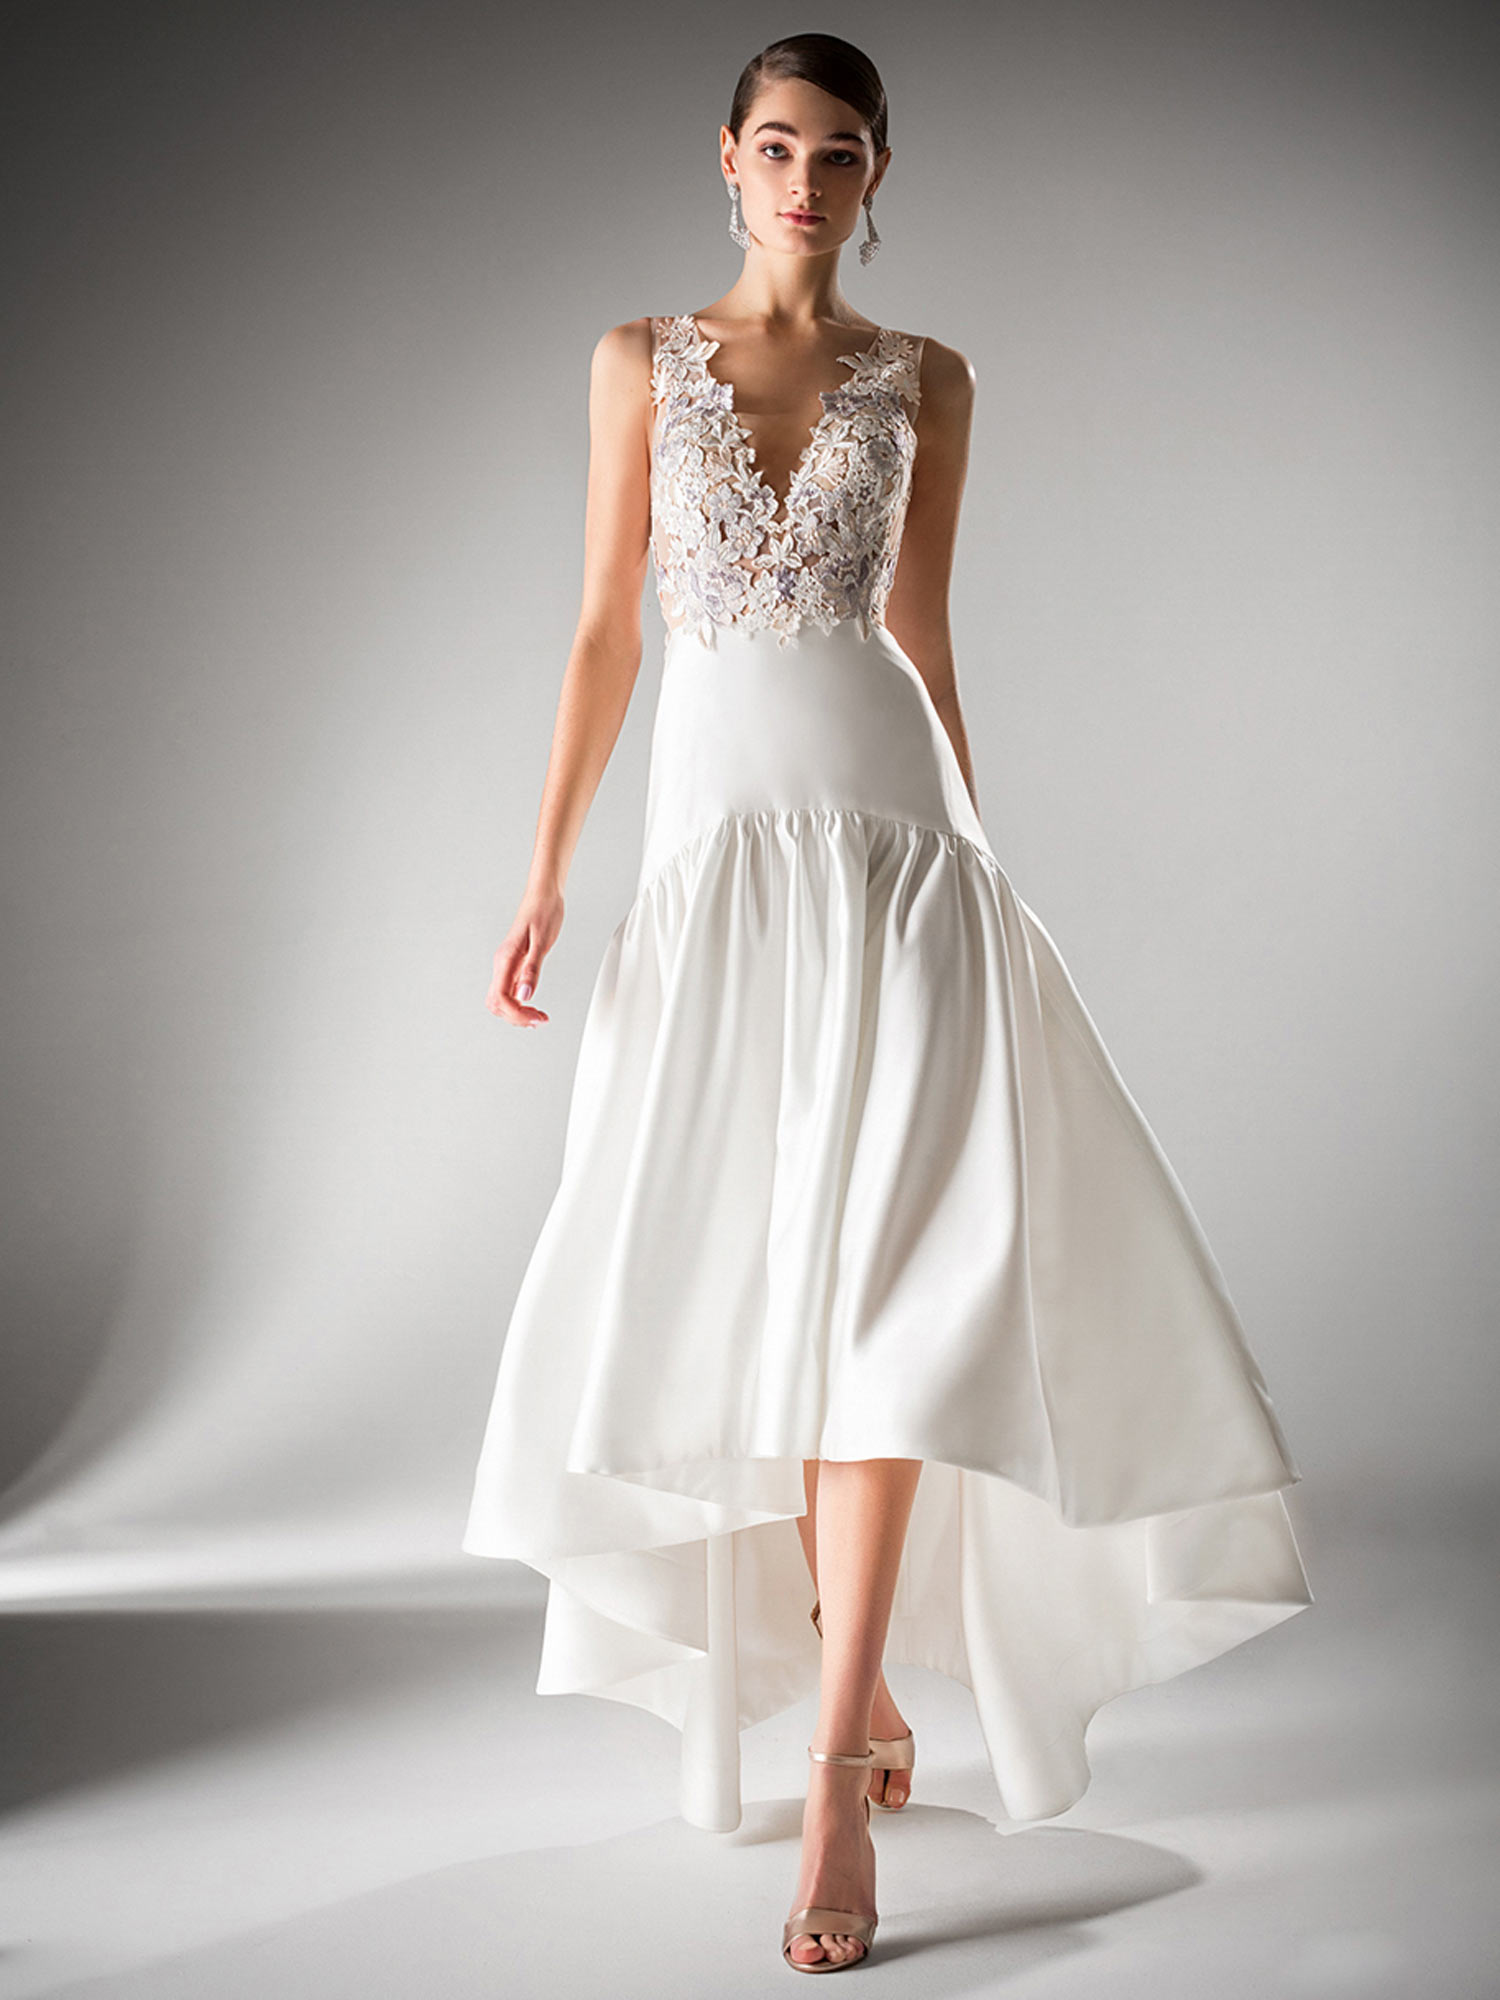 Style #403, available in ivory